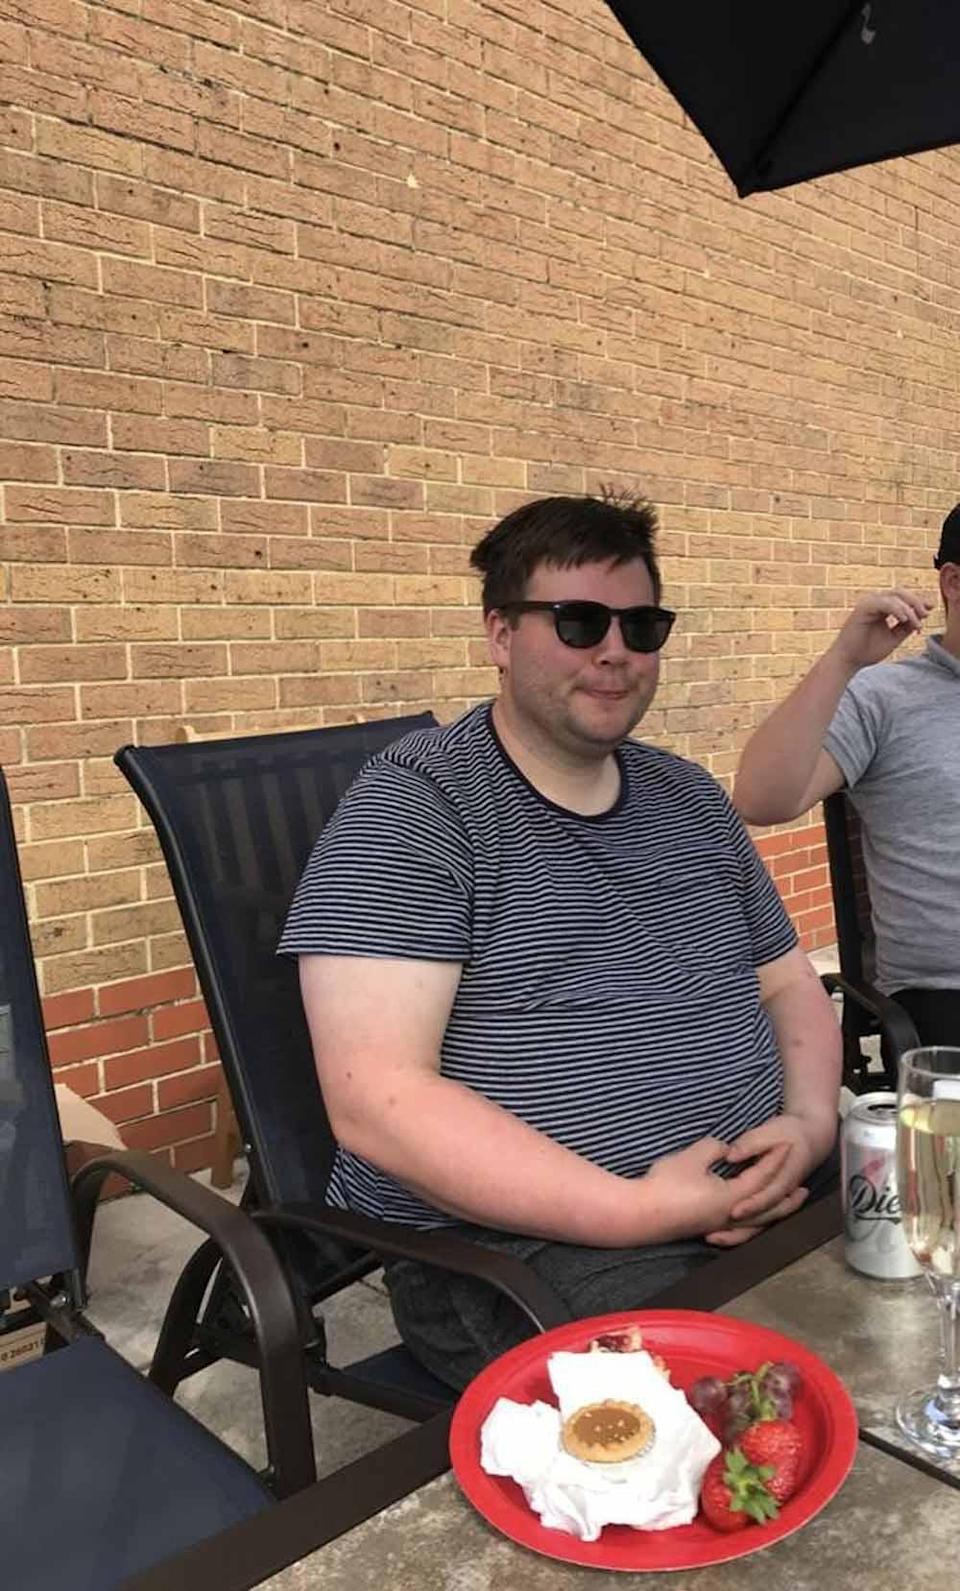 Rhys pictured at a barbeque before losing weight. PA REAL LIFE